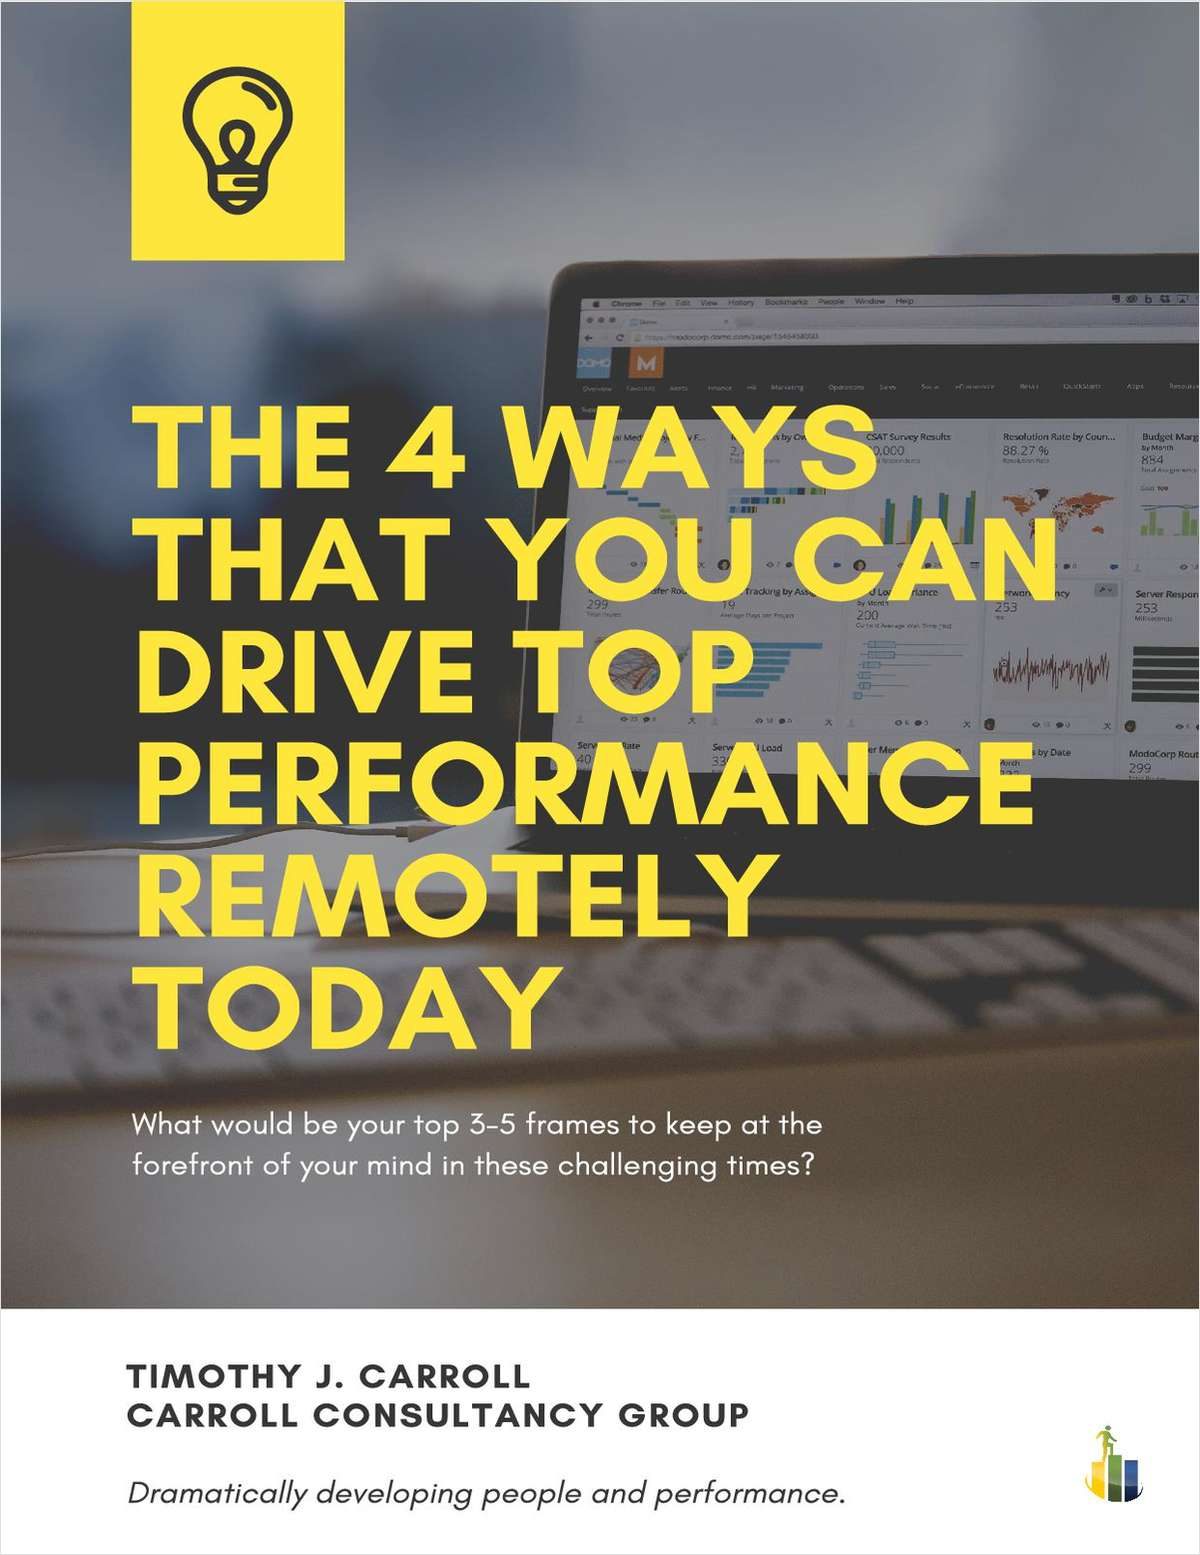 The 4 Ways That You Can Drive Top Performance Remotely Today